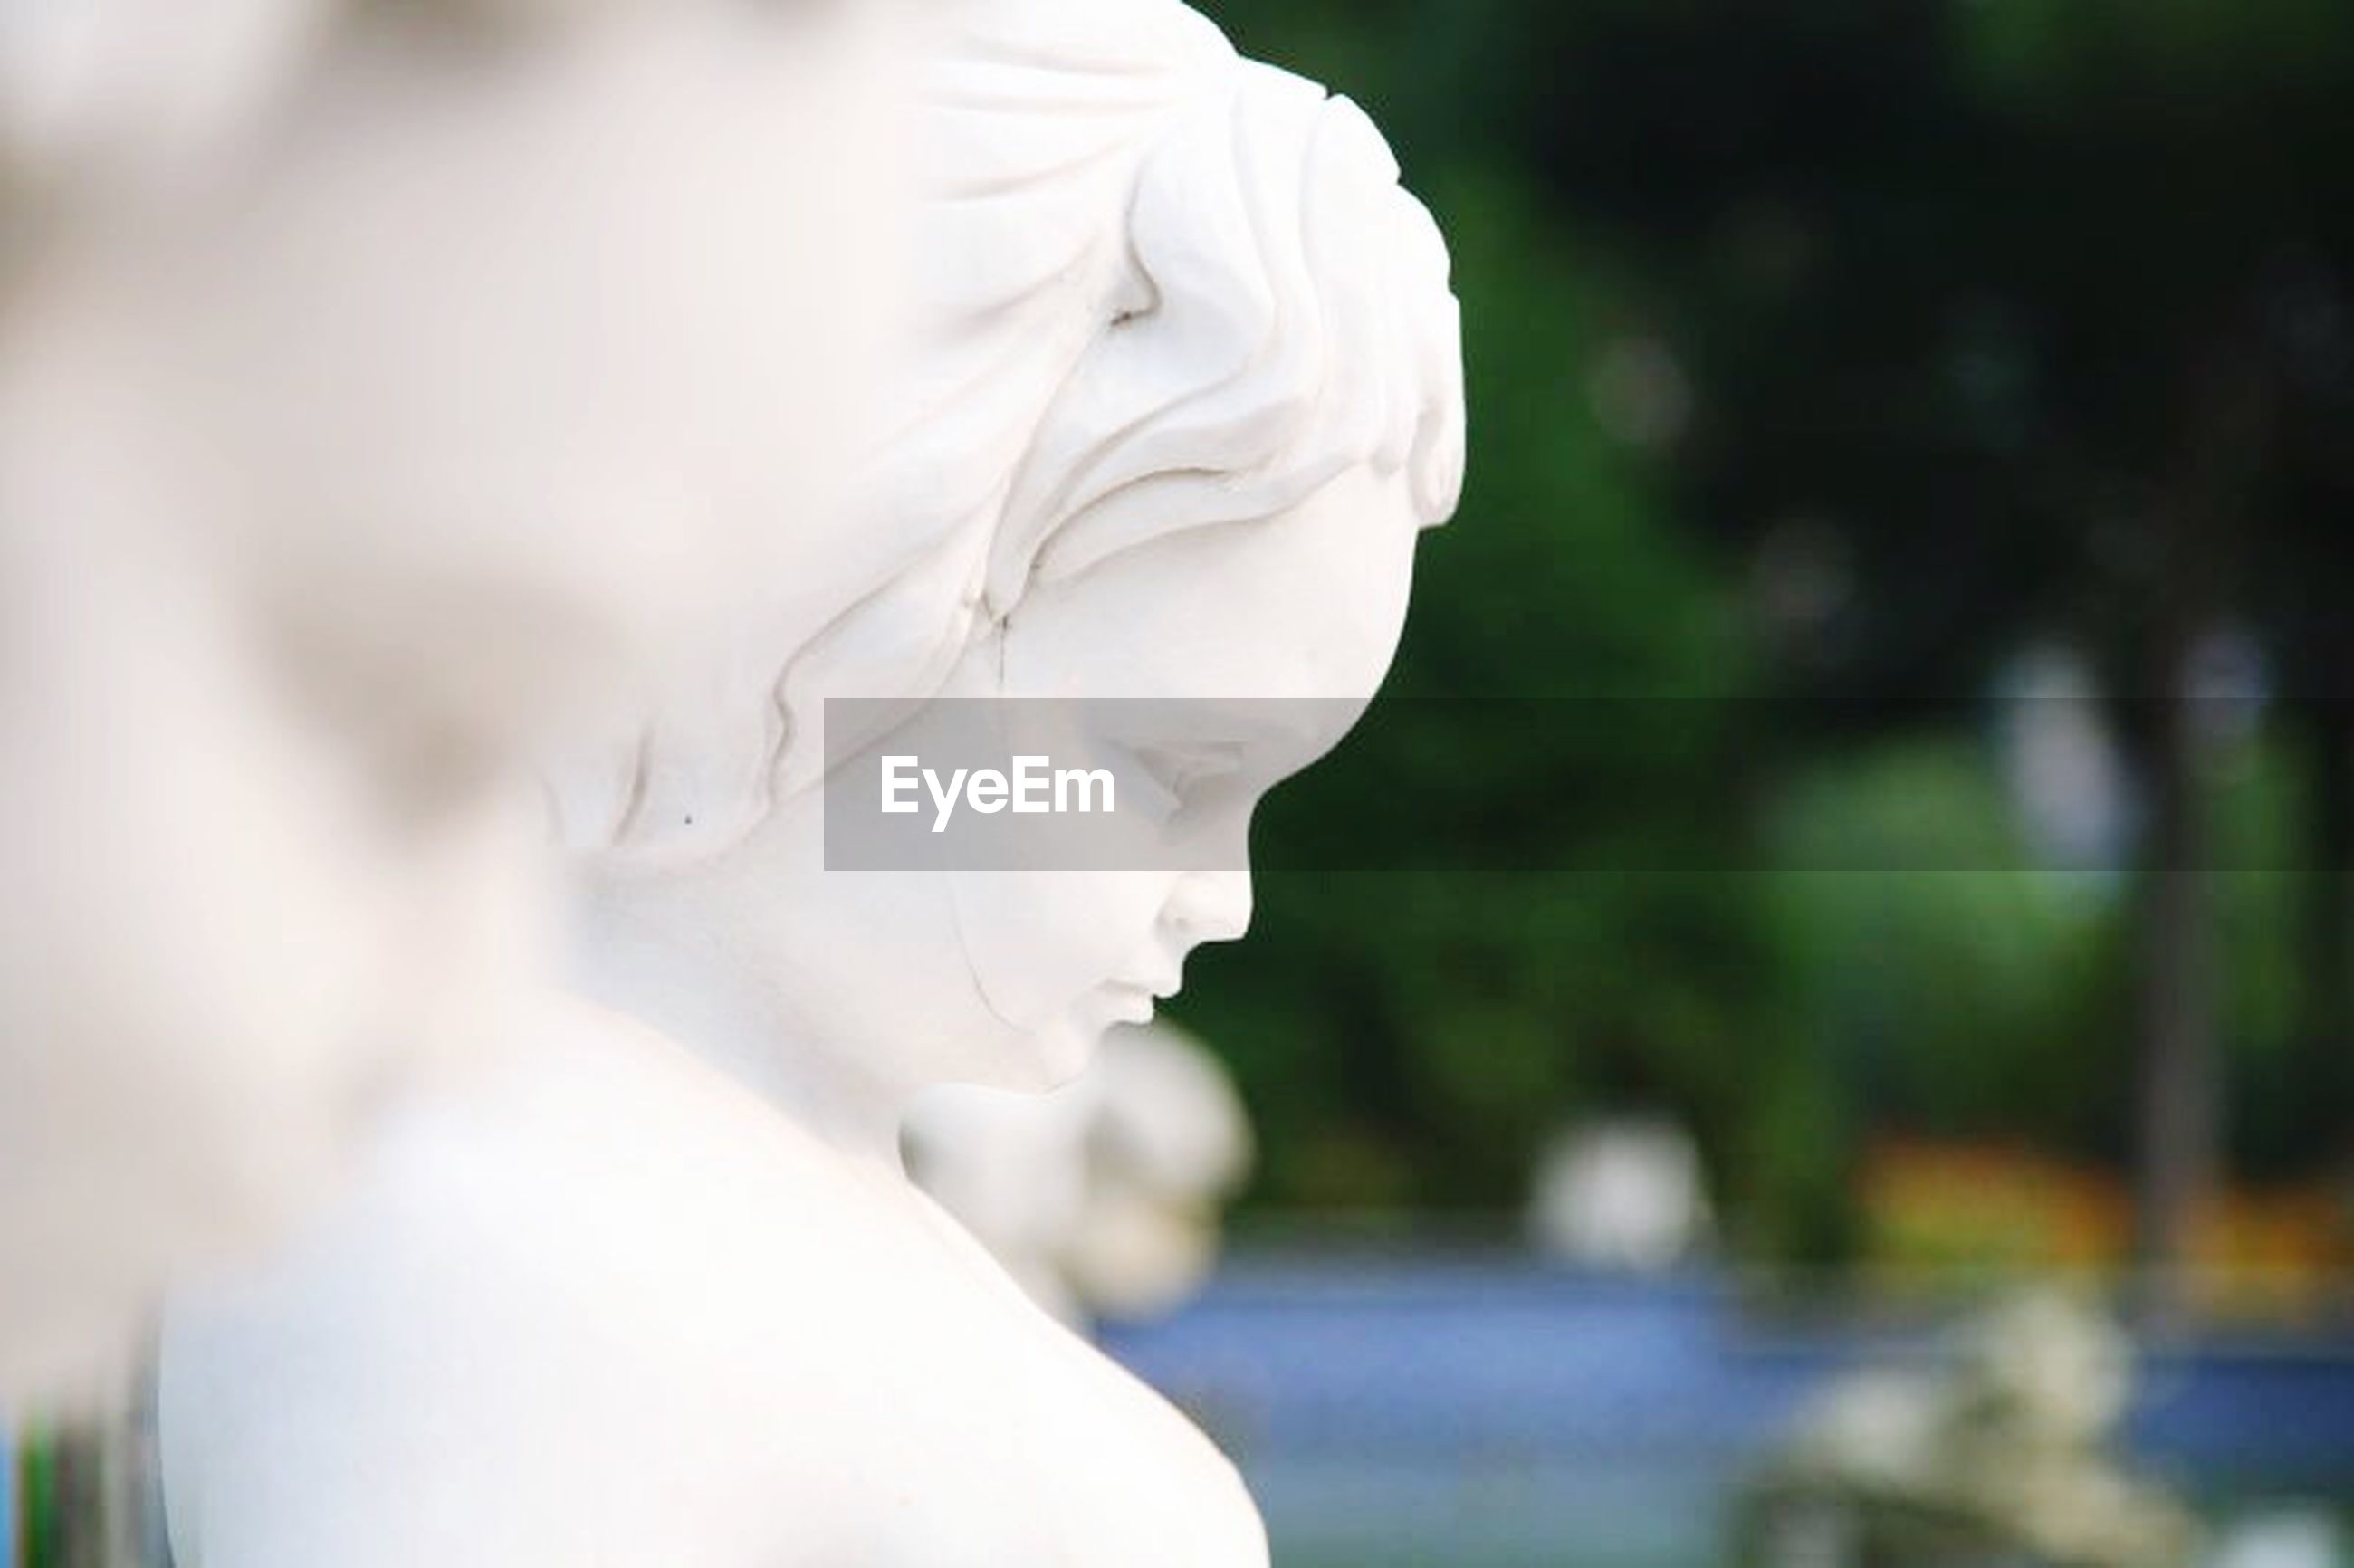 focus on foreground, close-up, selective focus, person, holding, flower, lifestyles, white color, human representation, part of, day, fragility, outdoors, sculpture, creativity